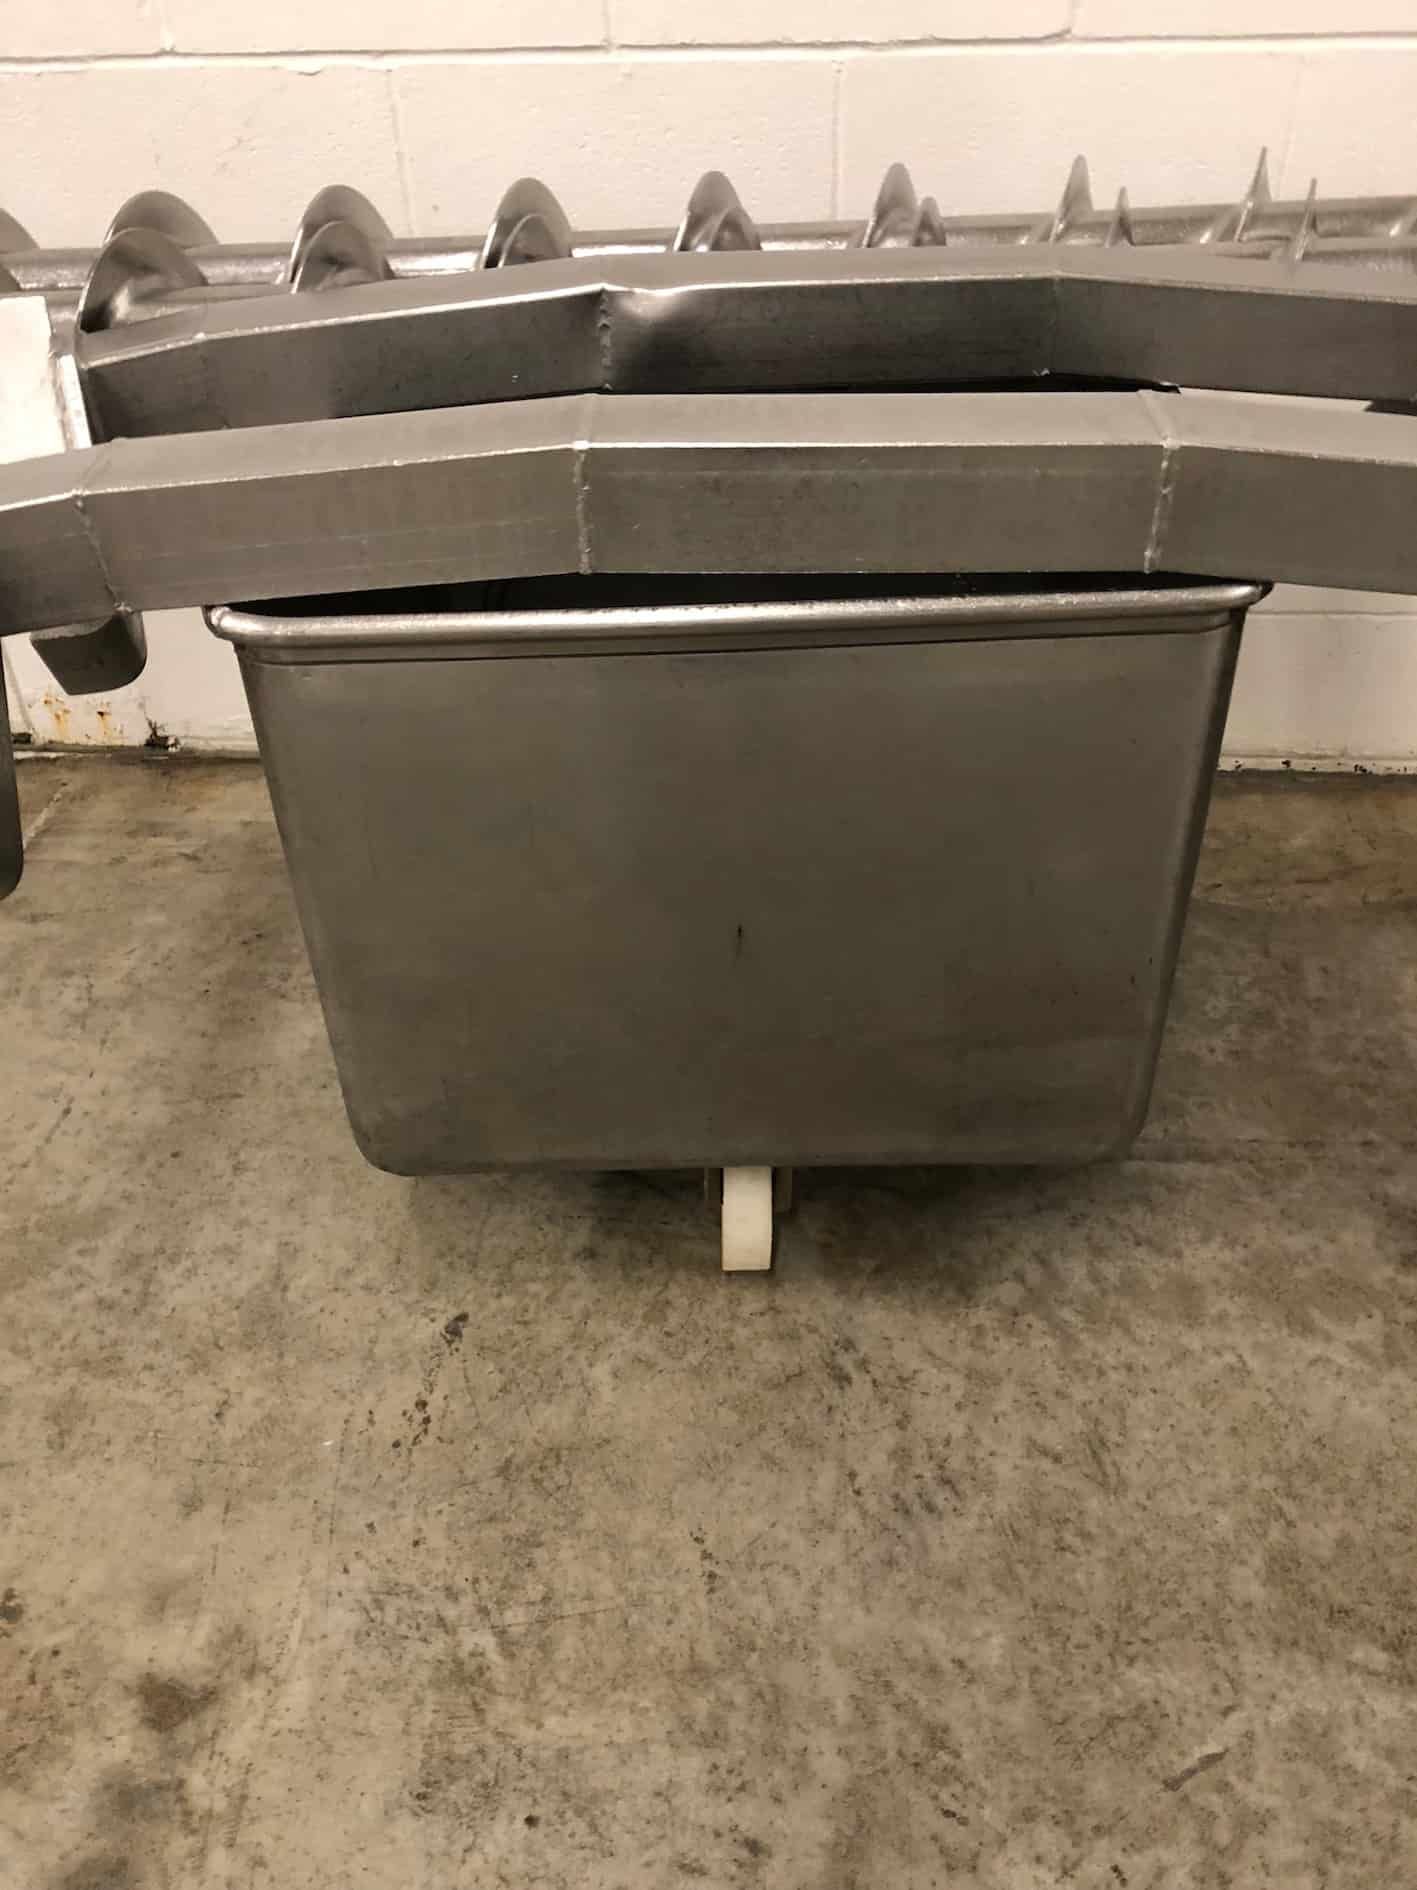 "(2) Portable Stainless Steel Totes for Bridge Dump, Approximately 26"" x 26"""